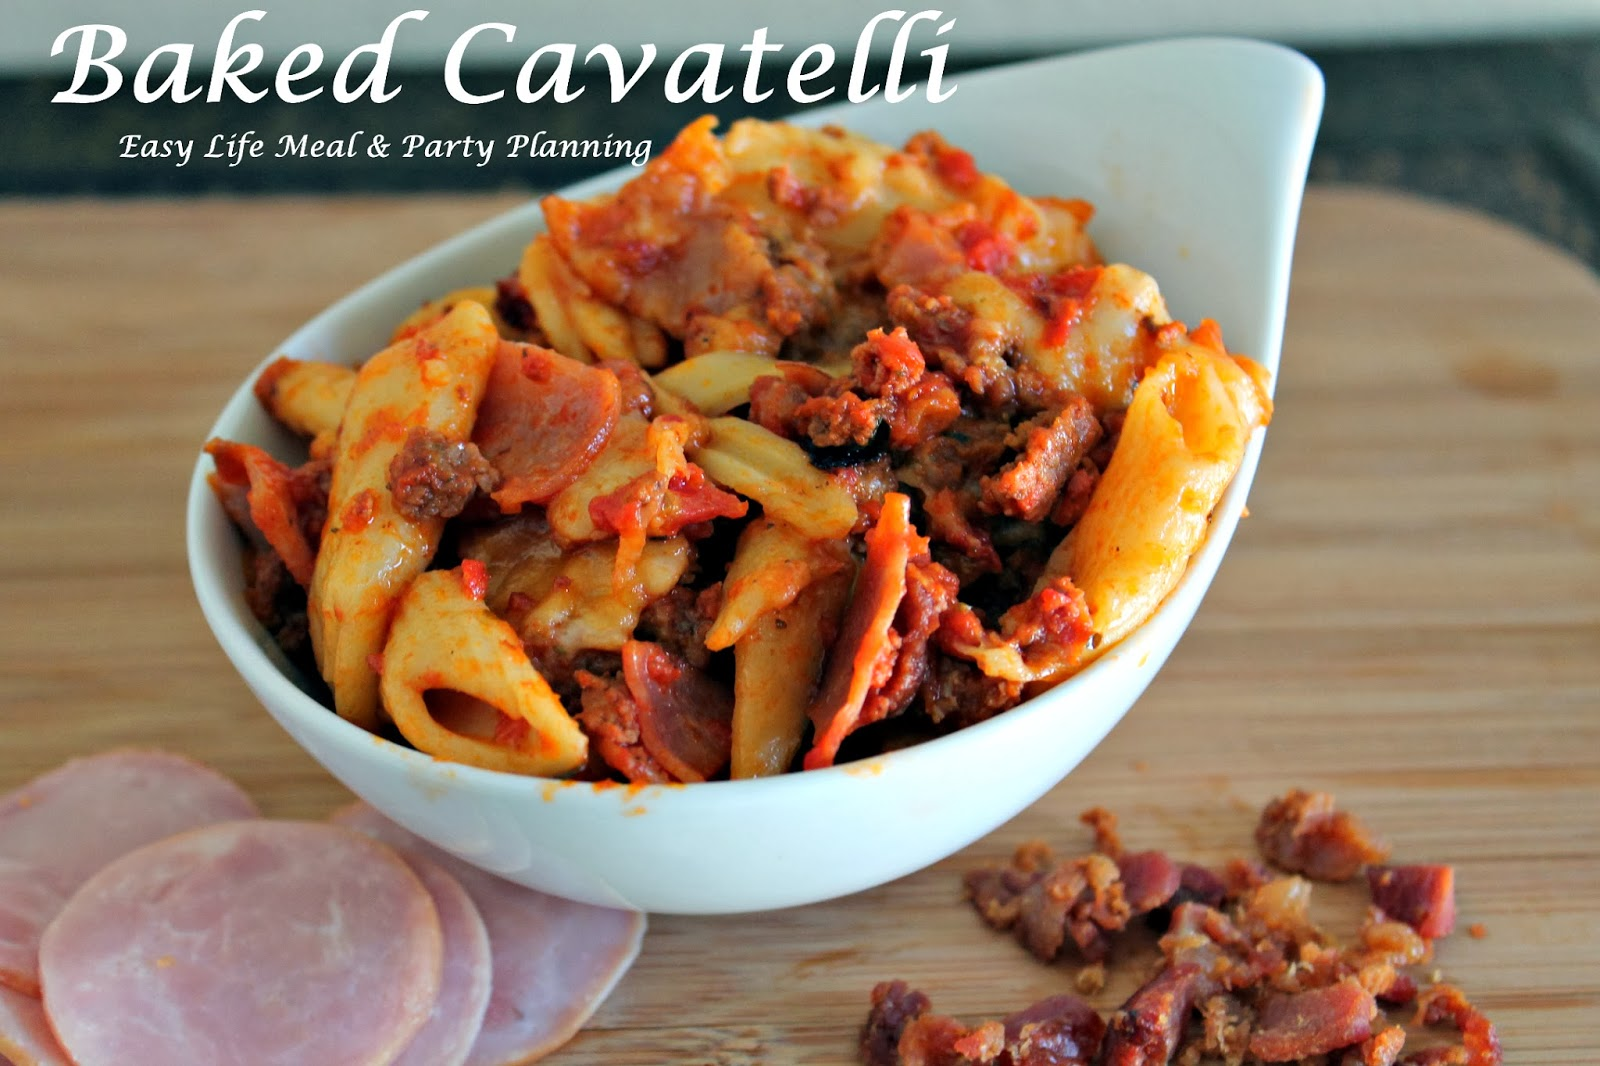 Baked Cavatelli - Easy Life Meal & Party Planning - A delicious Cavatelli full of hamburger, Canadian bacon and crumbled bacon